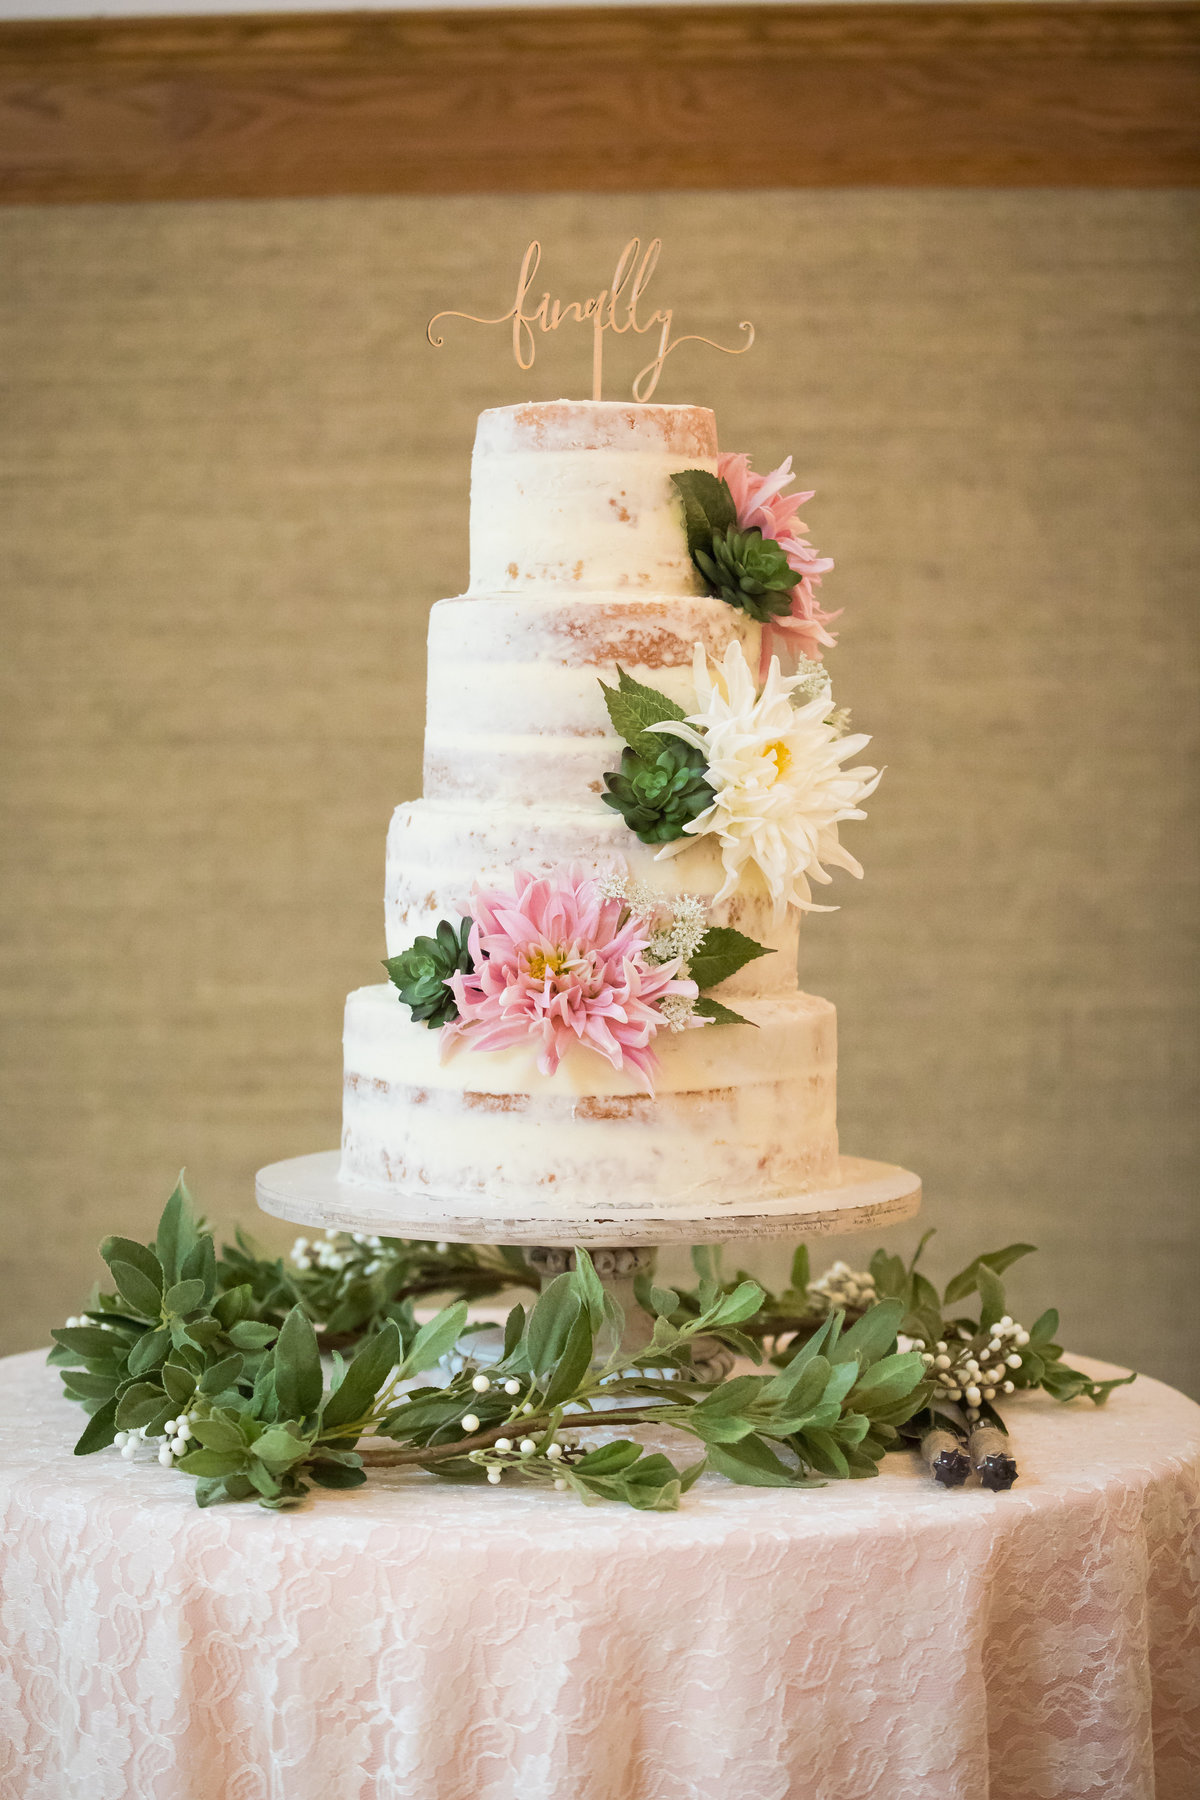 Jackson Hole, Wyoming, Teton Valley, Driggs, Idaho, wedding photographer, wedding cake, vanilla cake, wedding reception